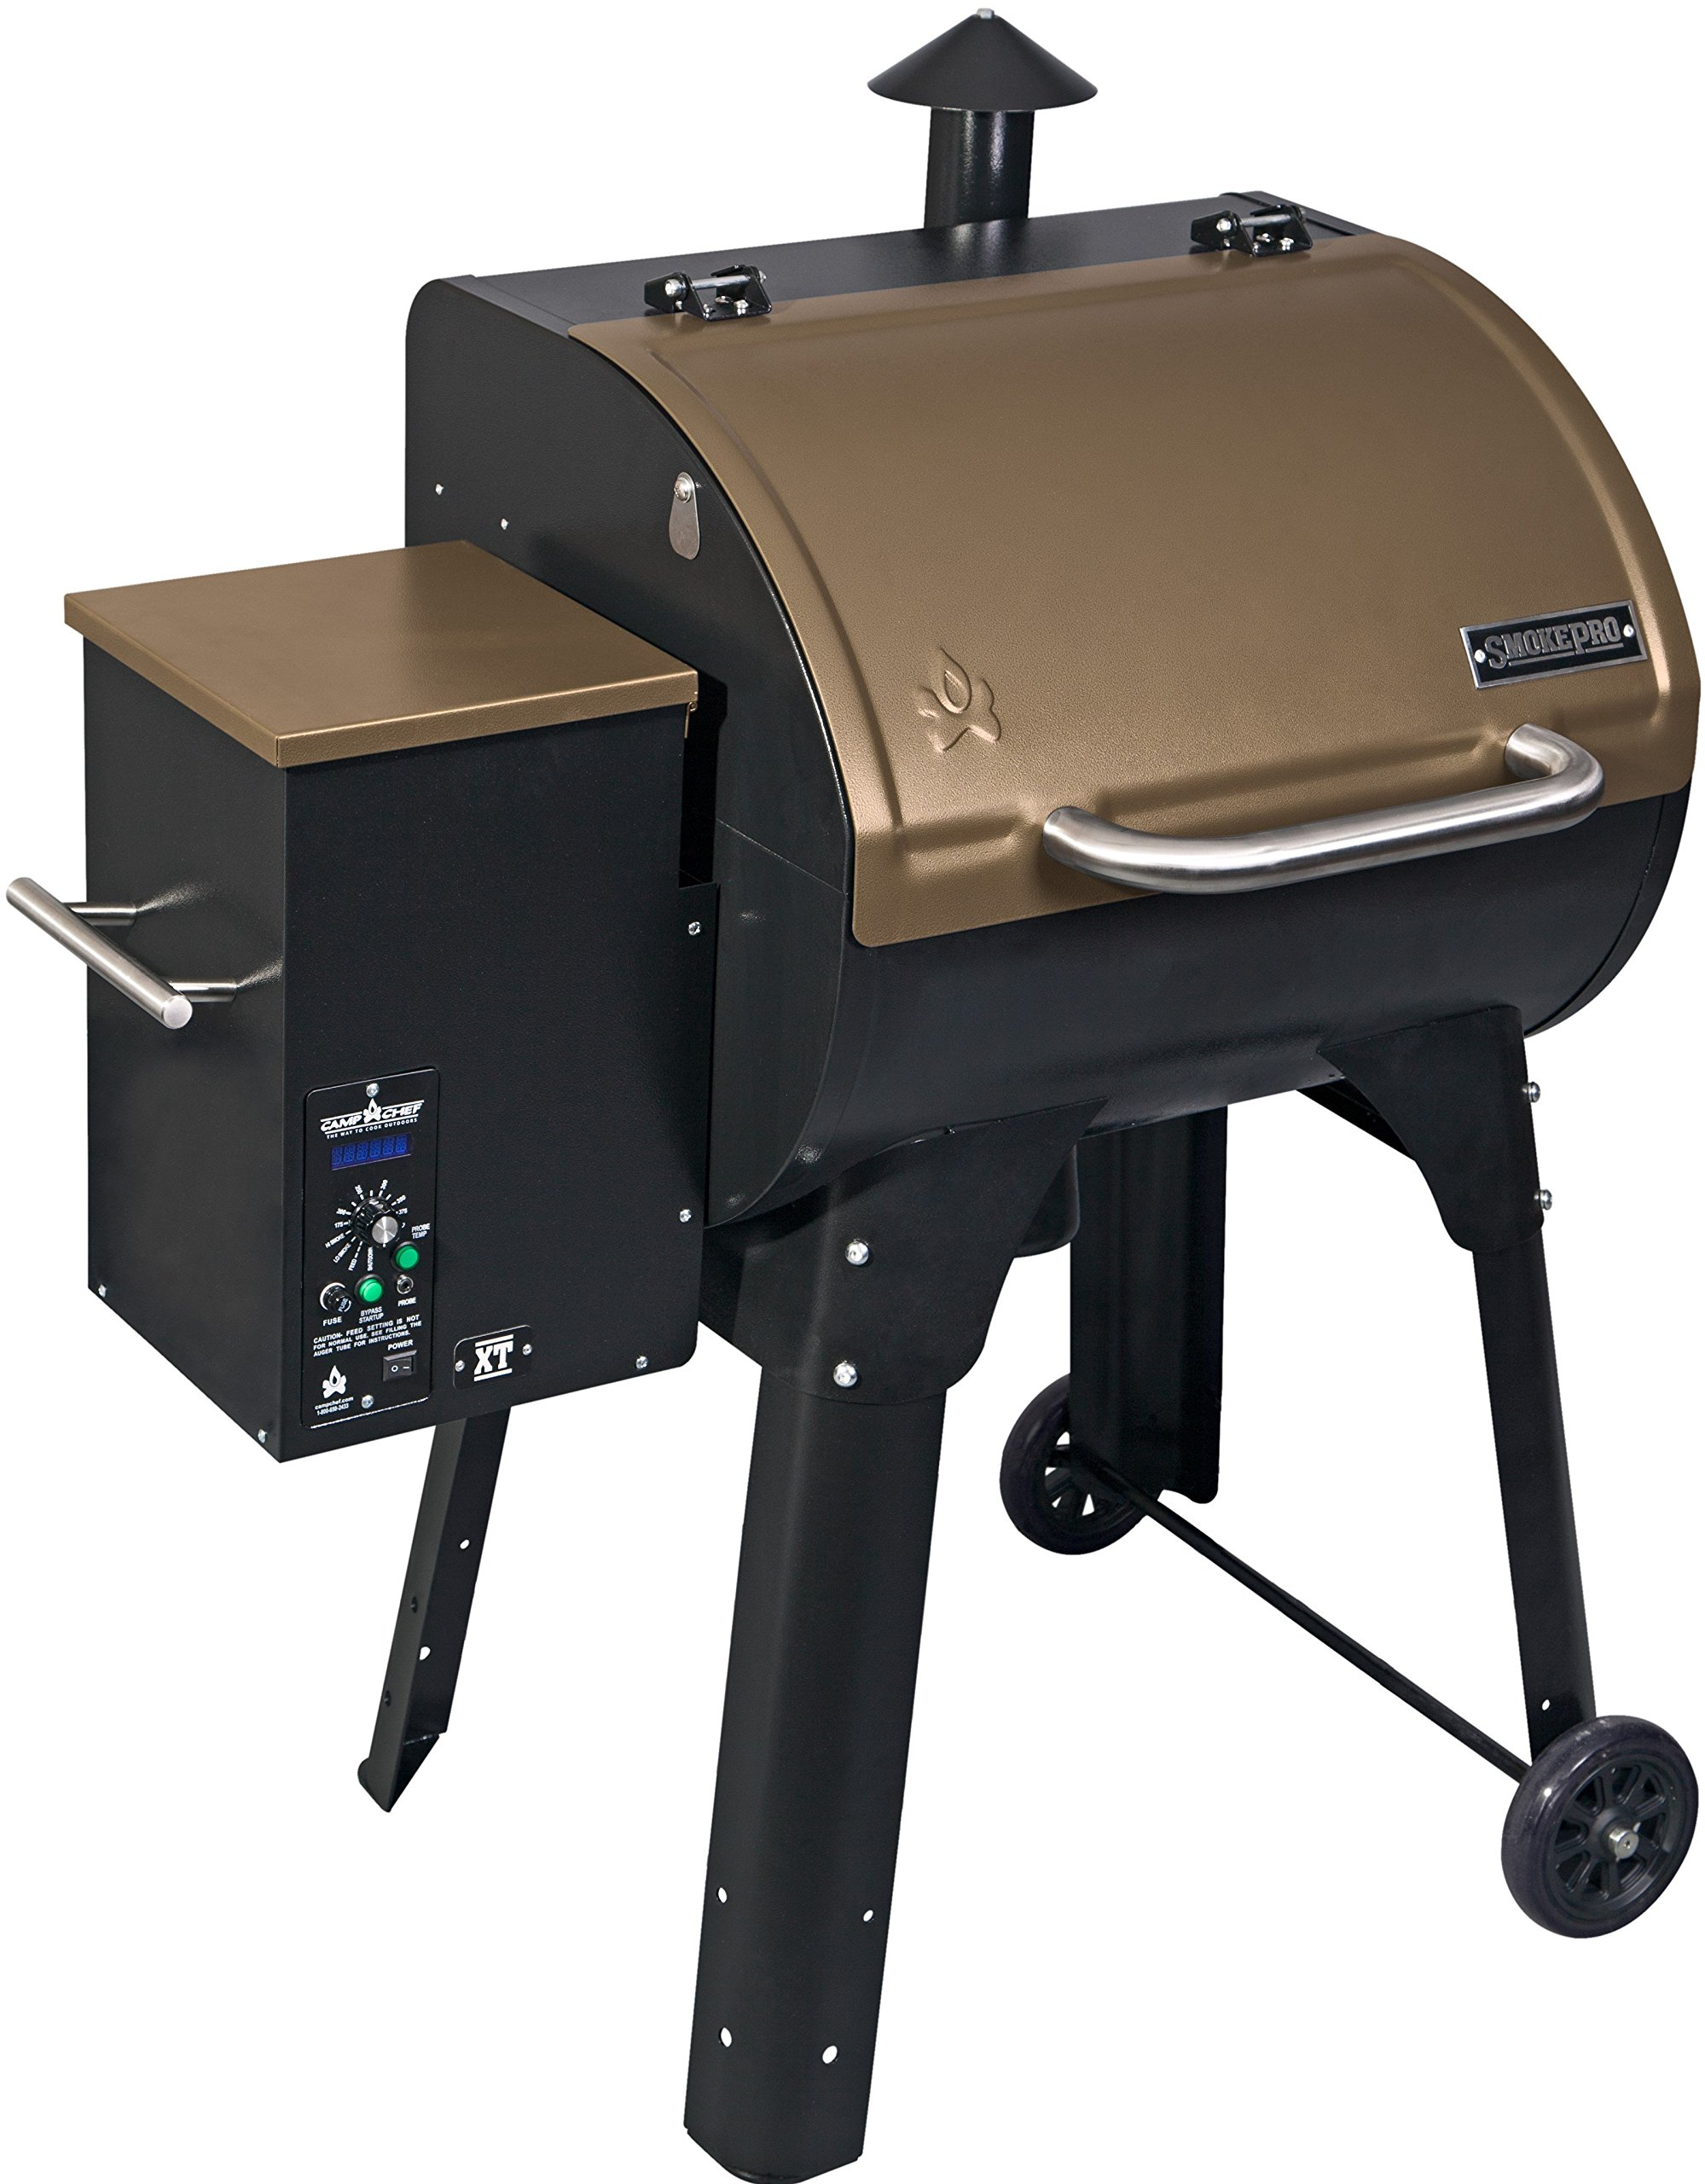 Camp Chef SmokePro XT Wood Pellet Grill Smoker, Bronze (PG24XTB) by Camp Chef